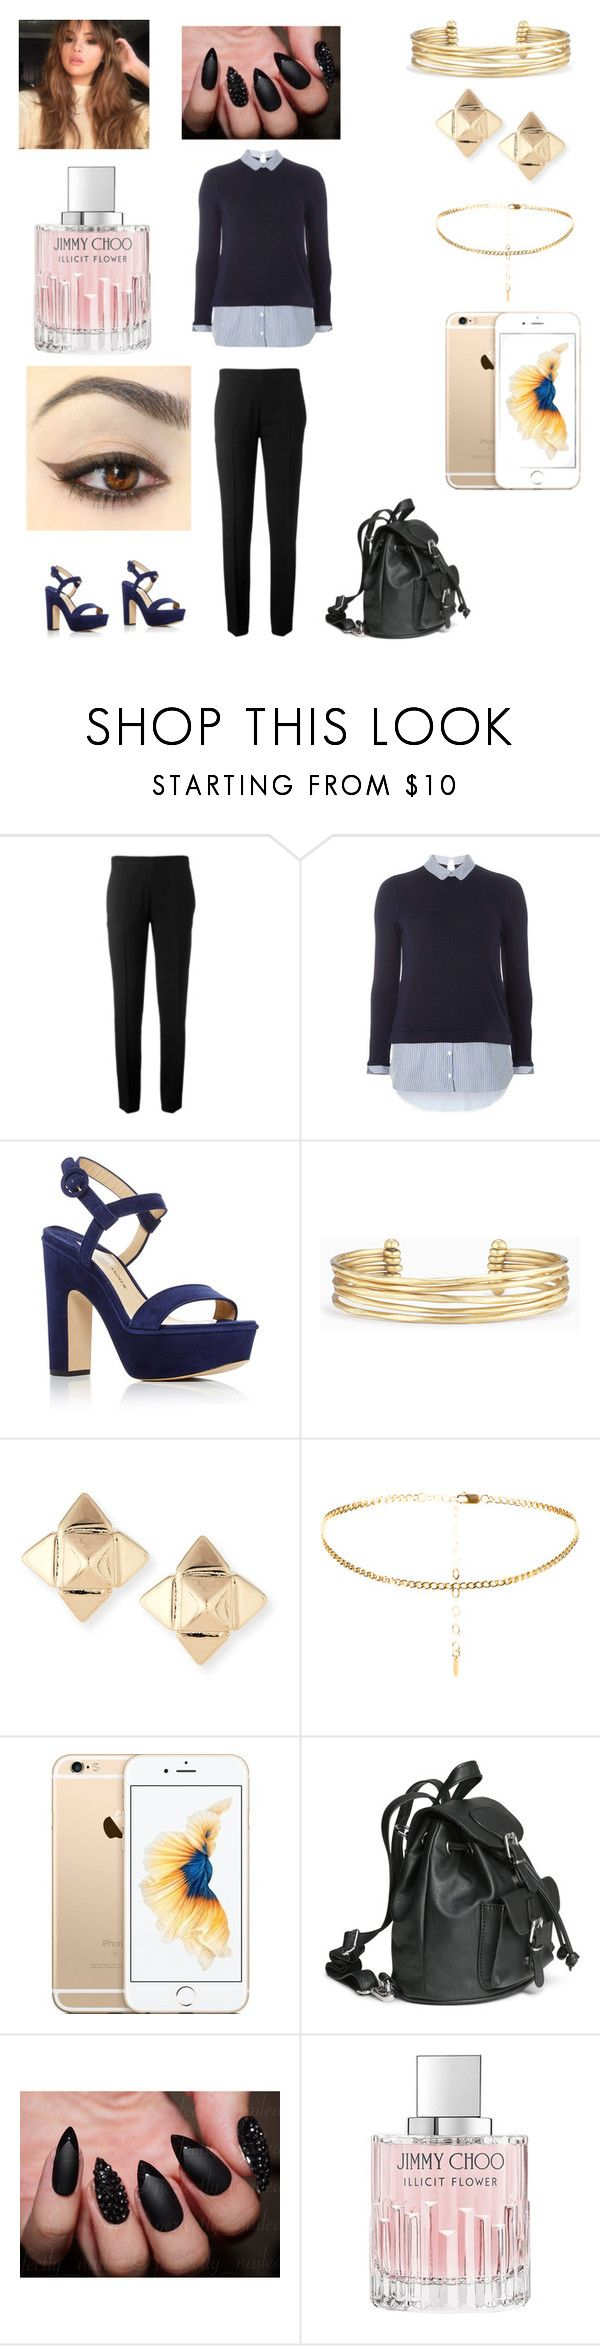 """""""Spencer hasting's"""" by jewjewbeans9 ❤ liked on Polyvore featuring Chloé, Dorothy Perkins, Paul Andrew, Stella & Dot, Valentino, H&M and Jimmy Choo"""